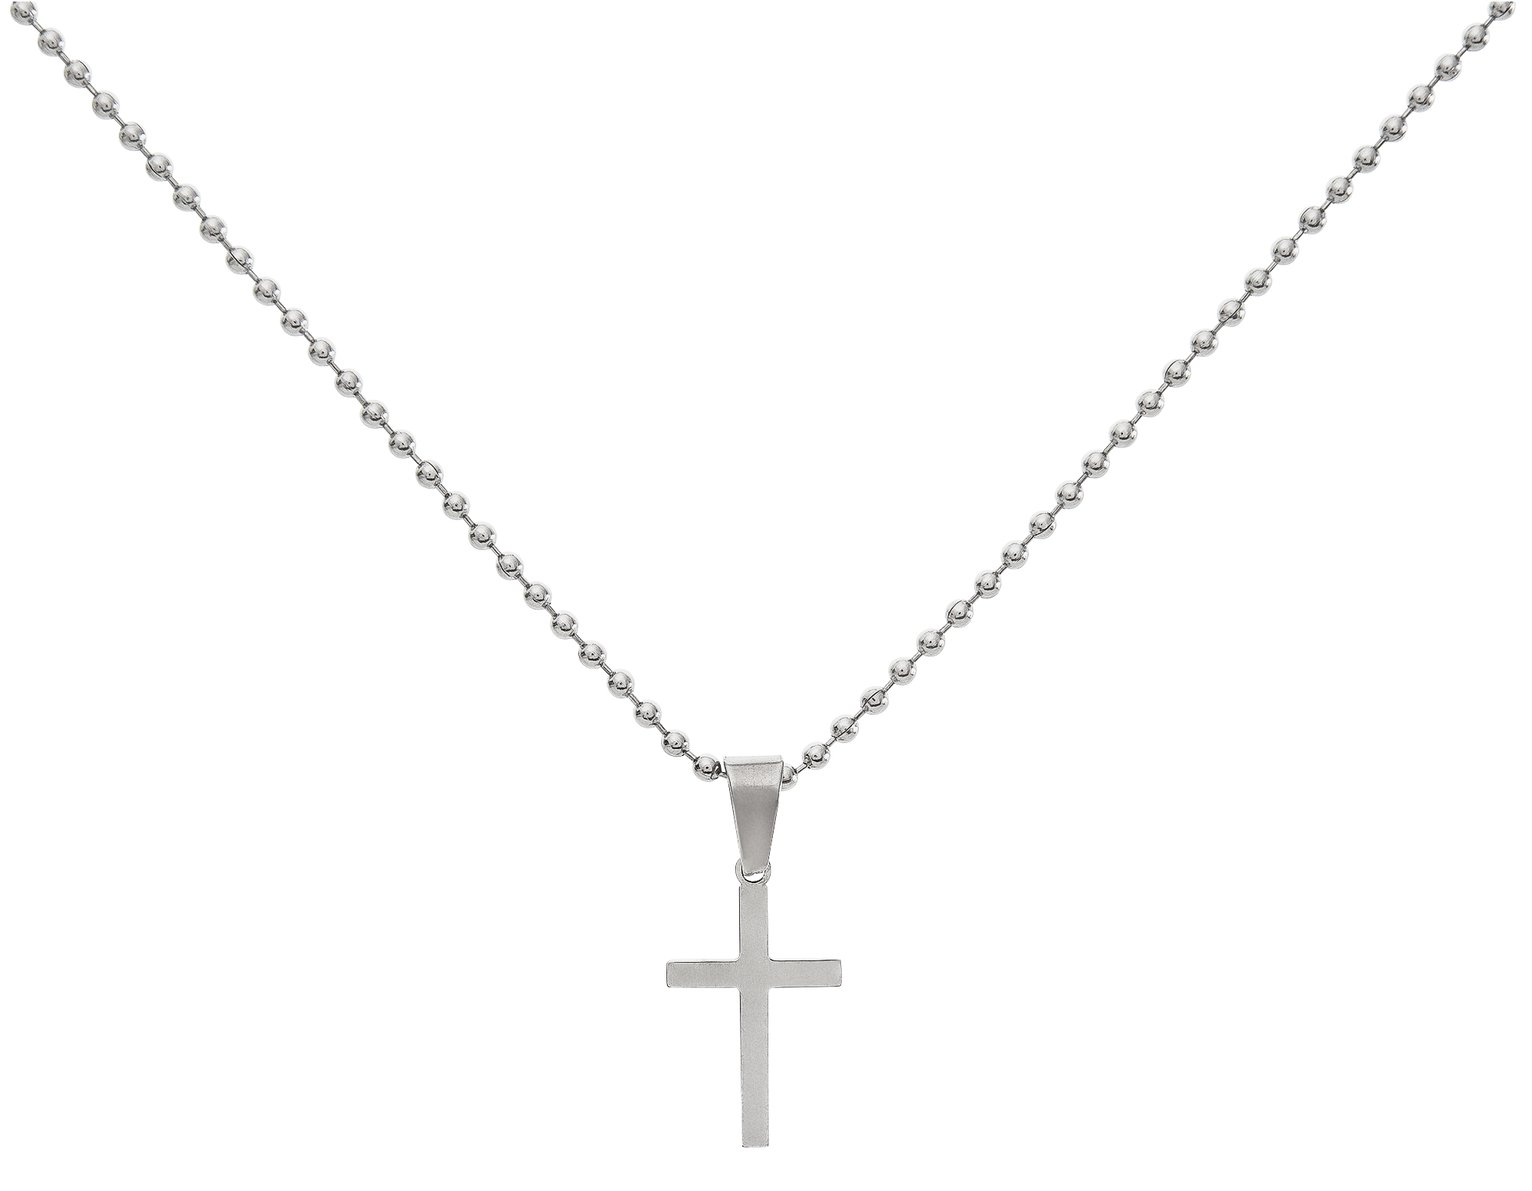 Image of Revere Kid's Stainless Steel Cross Pendant